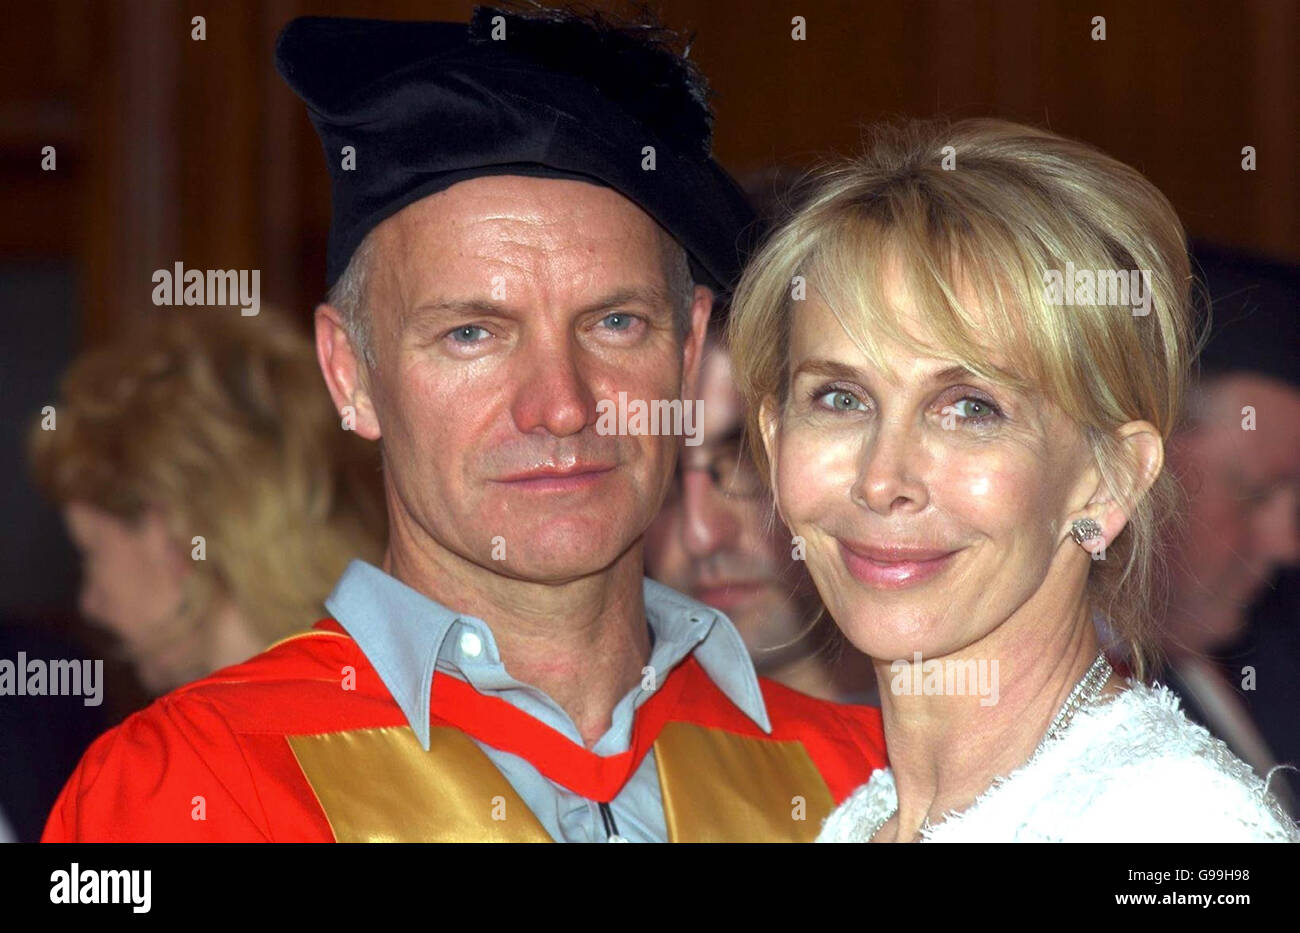 Singer-songwriter Sting stands with his wife Trudie Styler after recieving an honorary doctorate of music from Newcastle University. Stock Photo